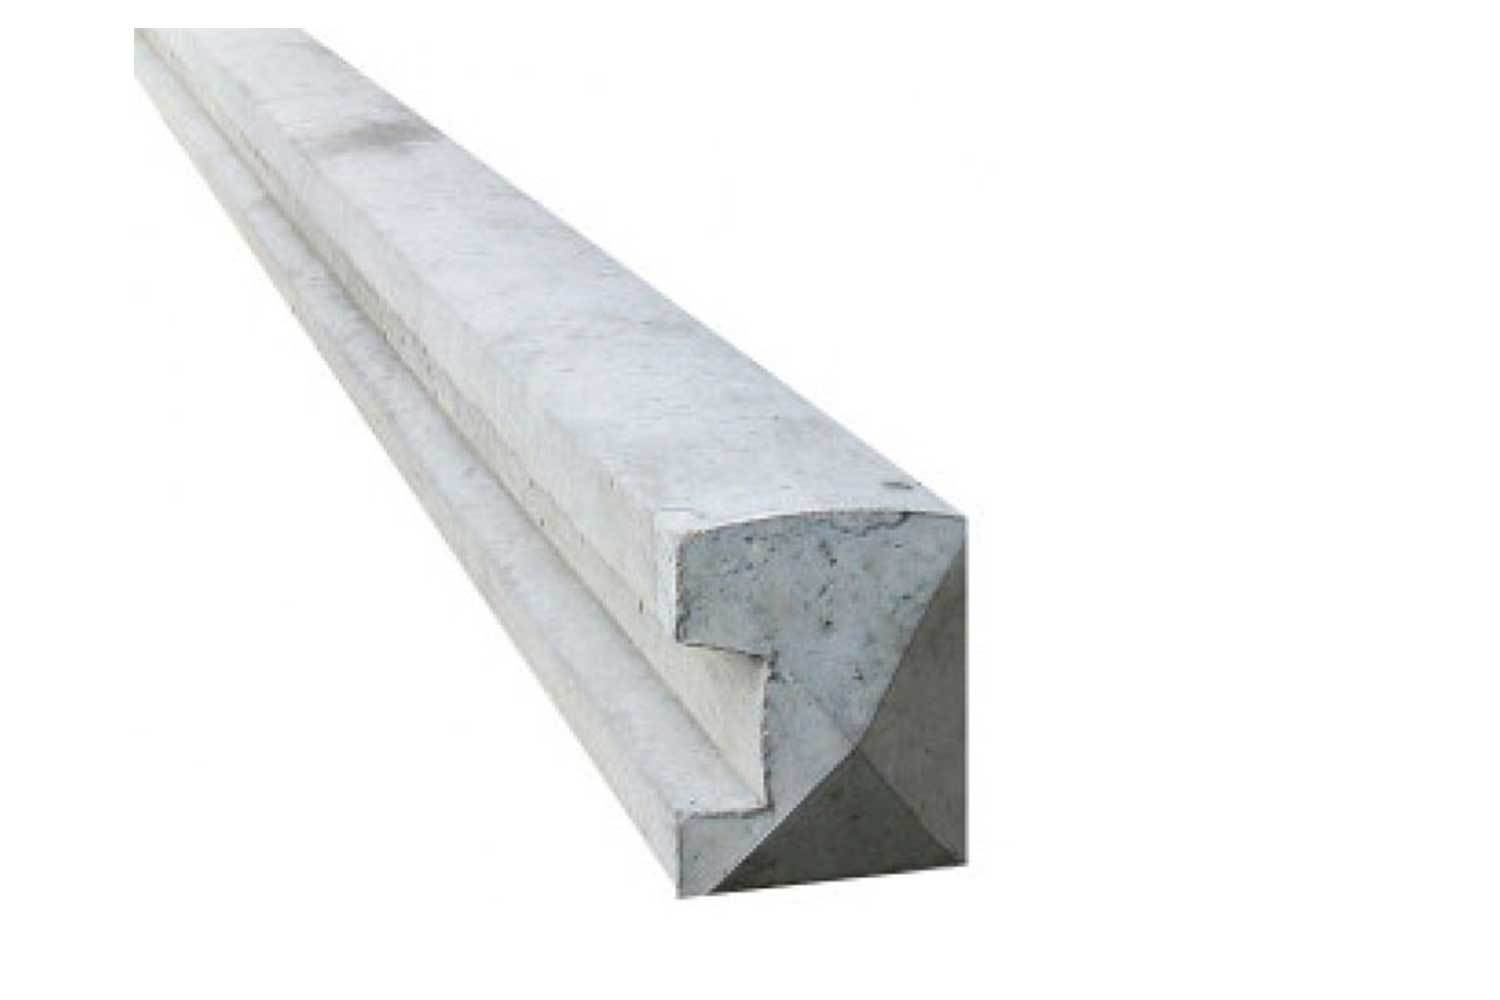 Wet Cast Slotted End Post 5 x 4 x 6ft